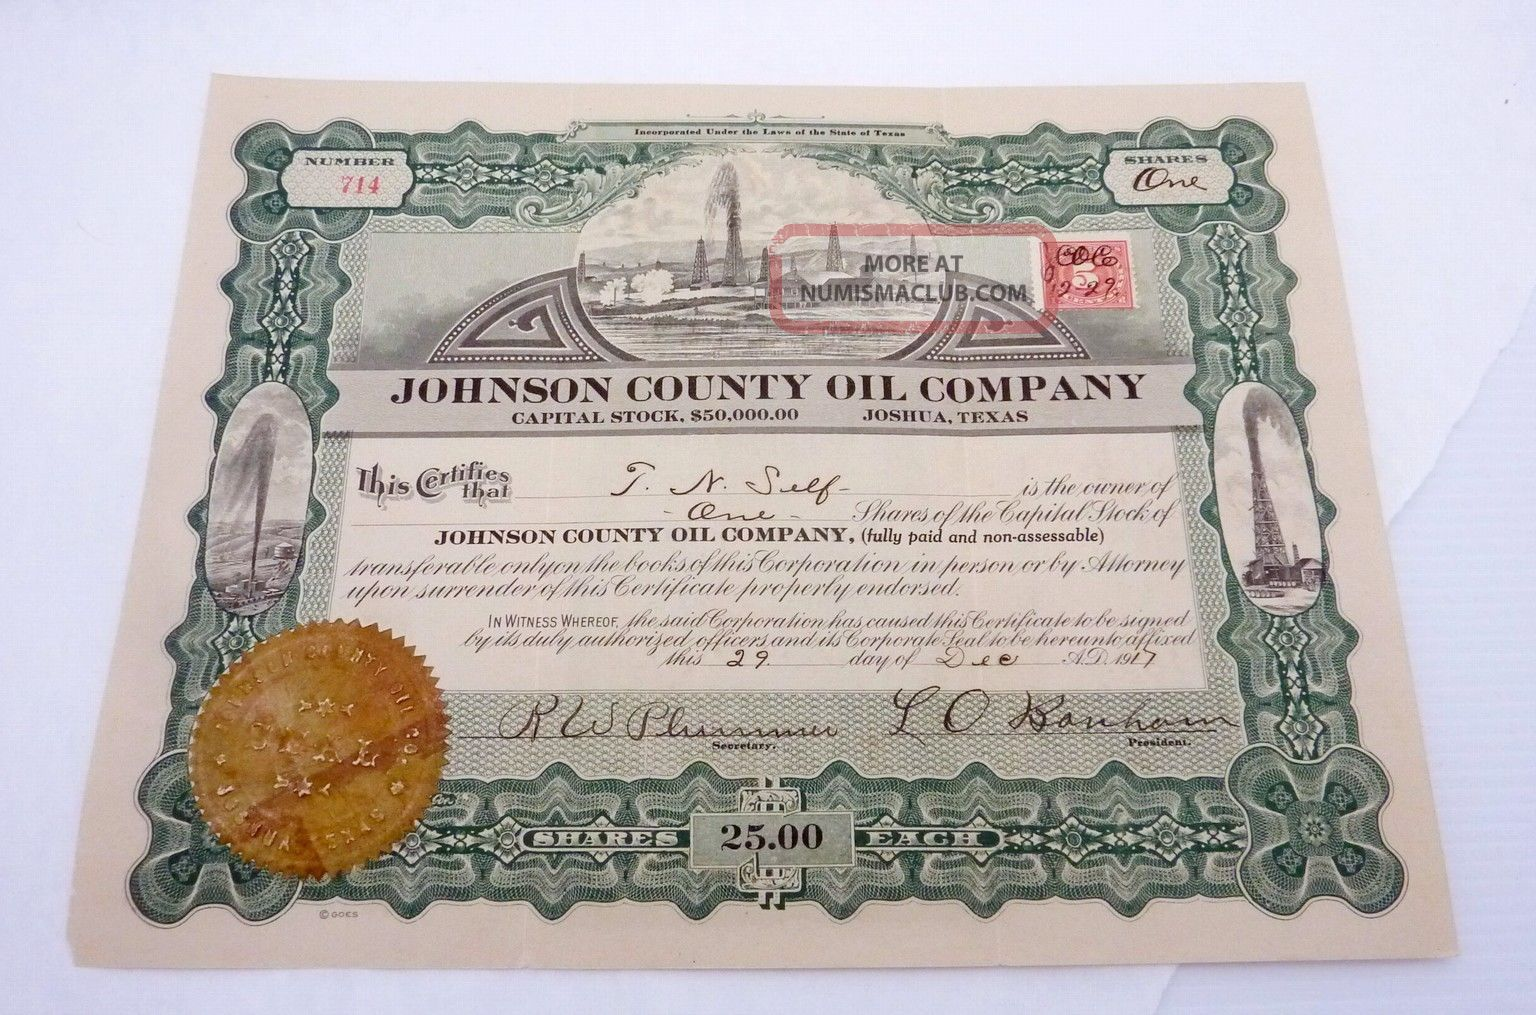 Antique 1917 Johnson County Oil Company Joshua Texas Stock Certificate 22963 Stocks & Bonds, Scripophily photo